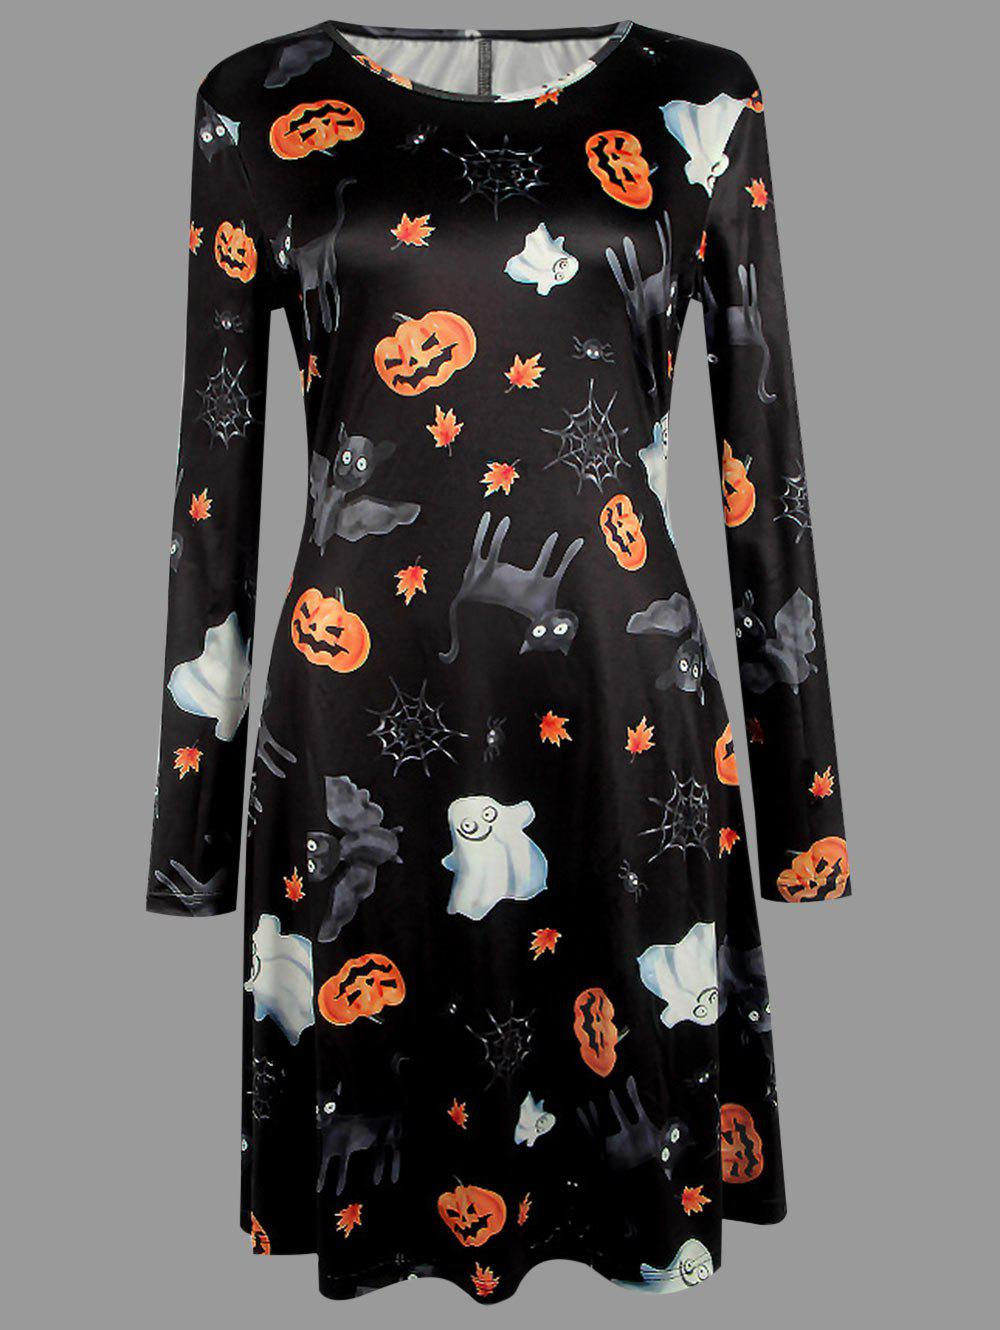 Affordable Plus Size Halloween Bat Cat Pumpkin Print Dress